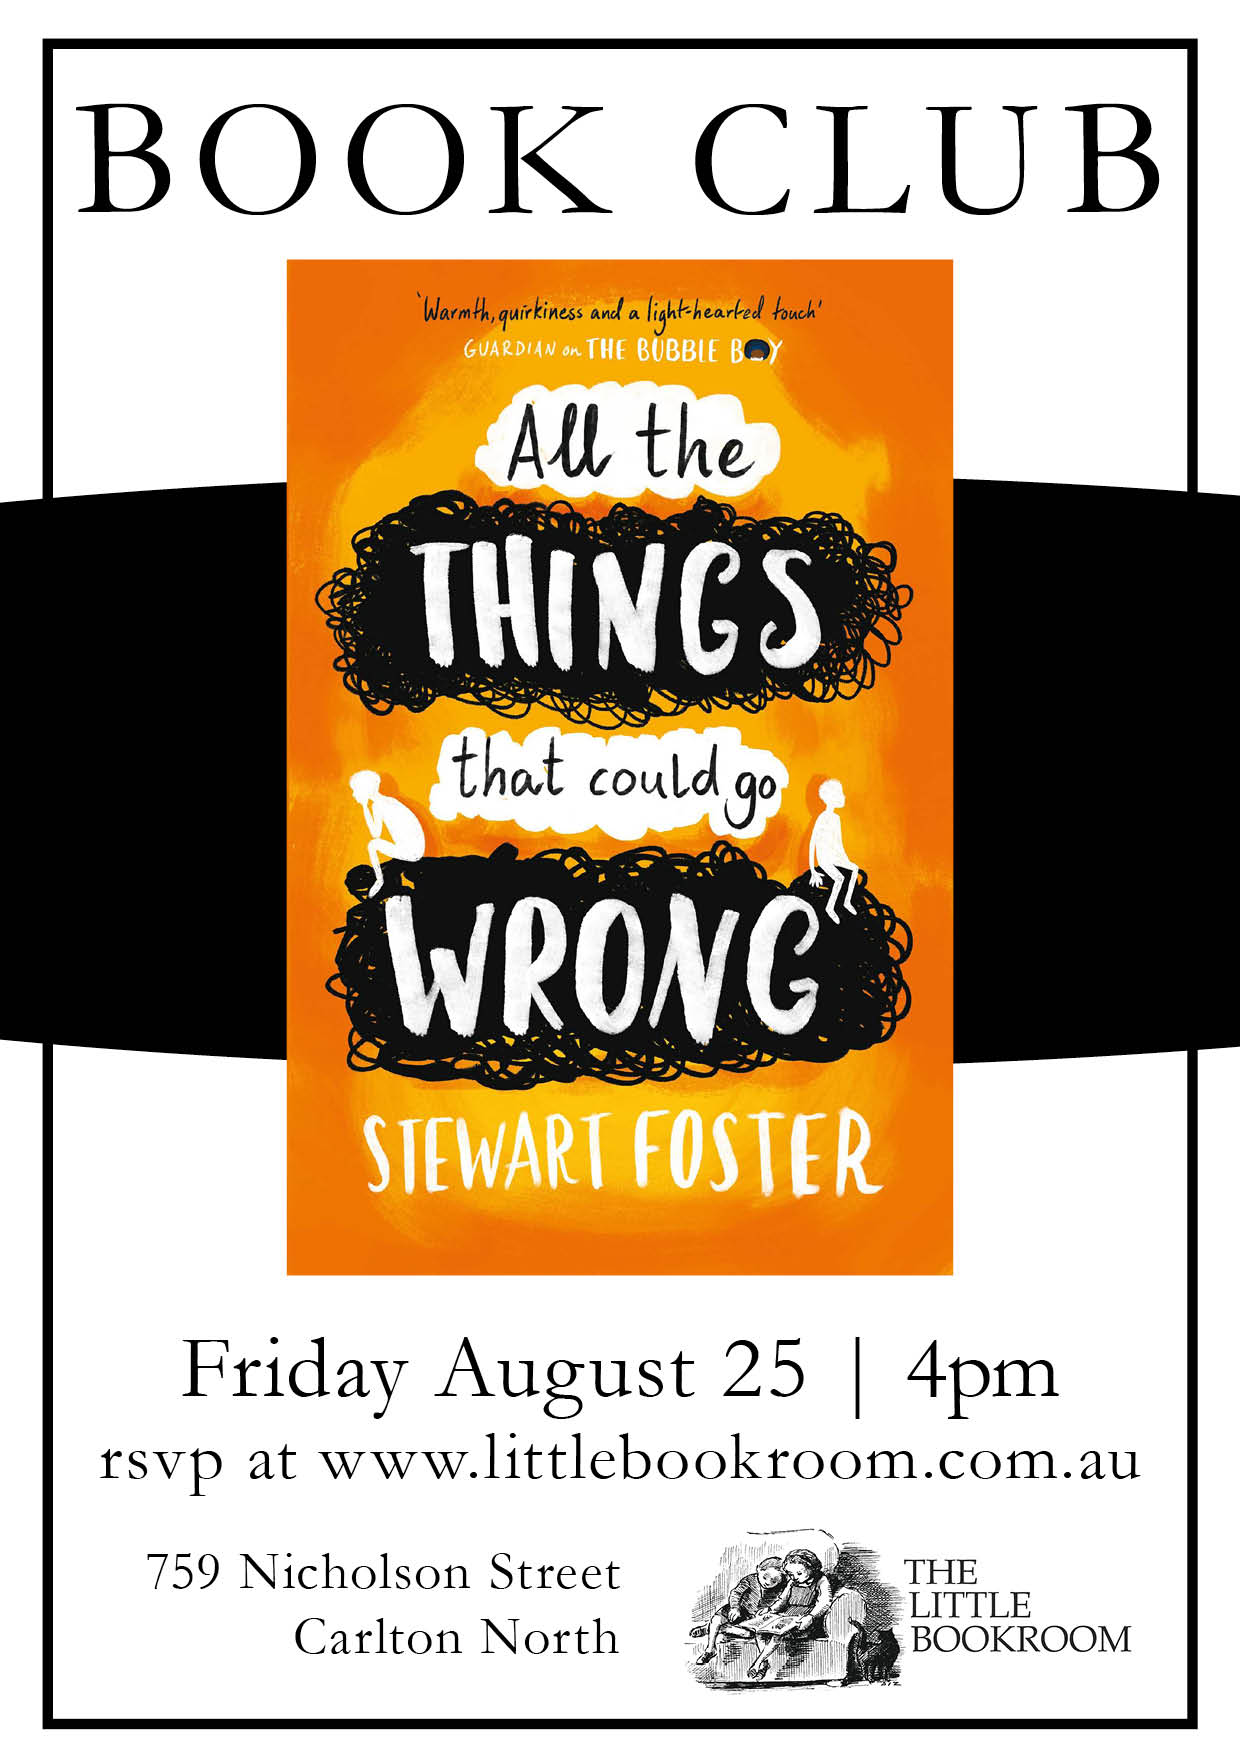 Book Club: All the things that could go wrong by stewart foster